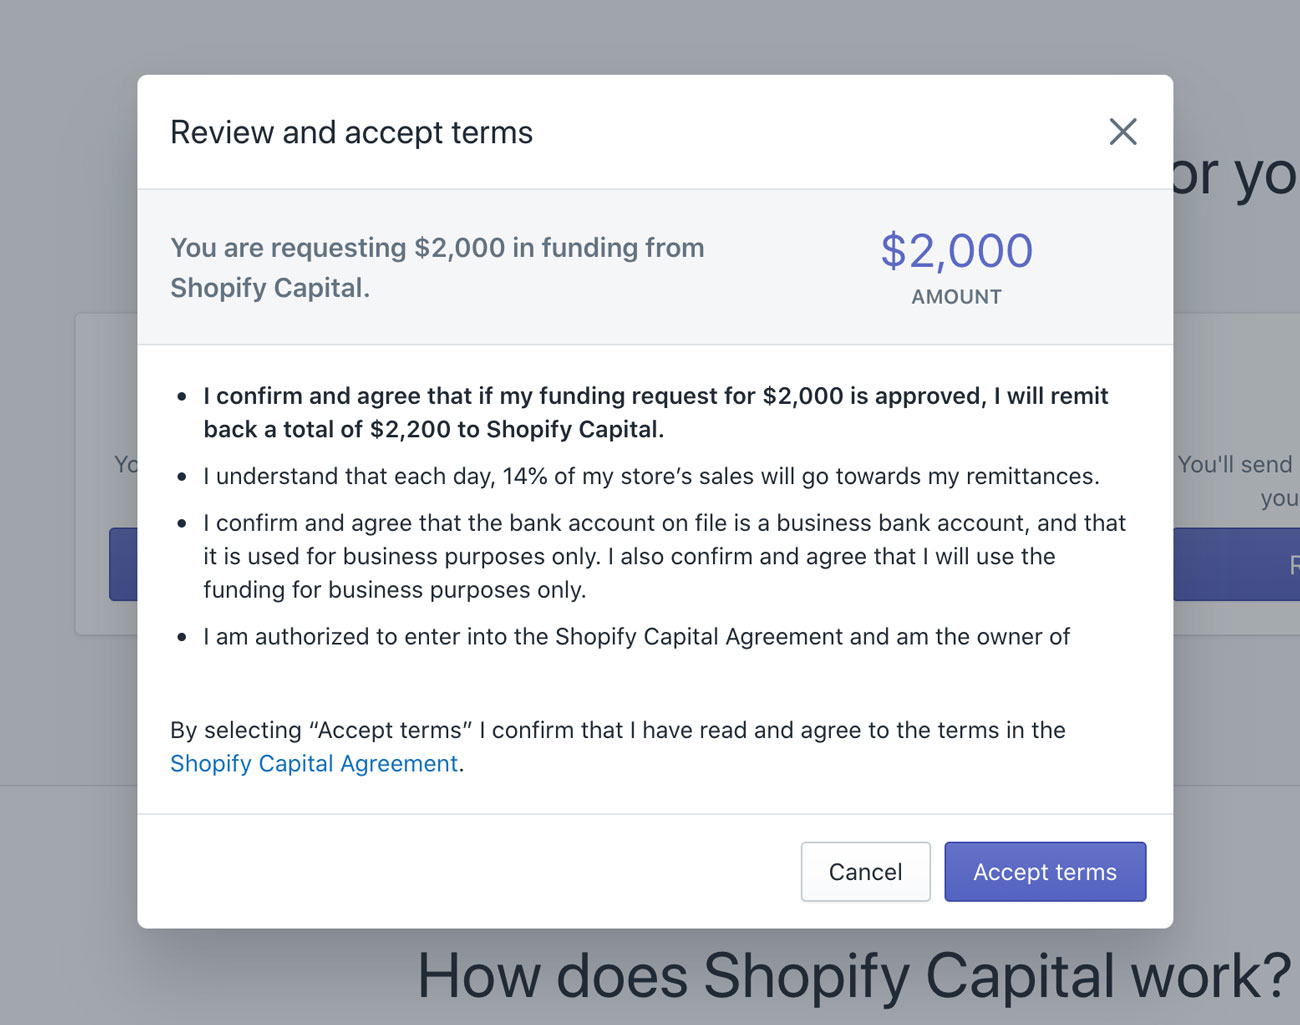 Shopify Capital accept terms